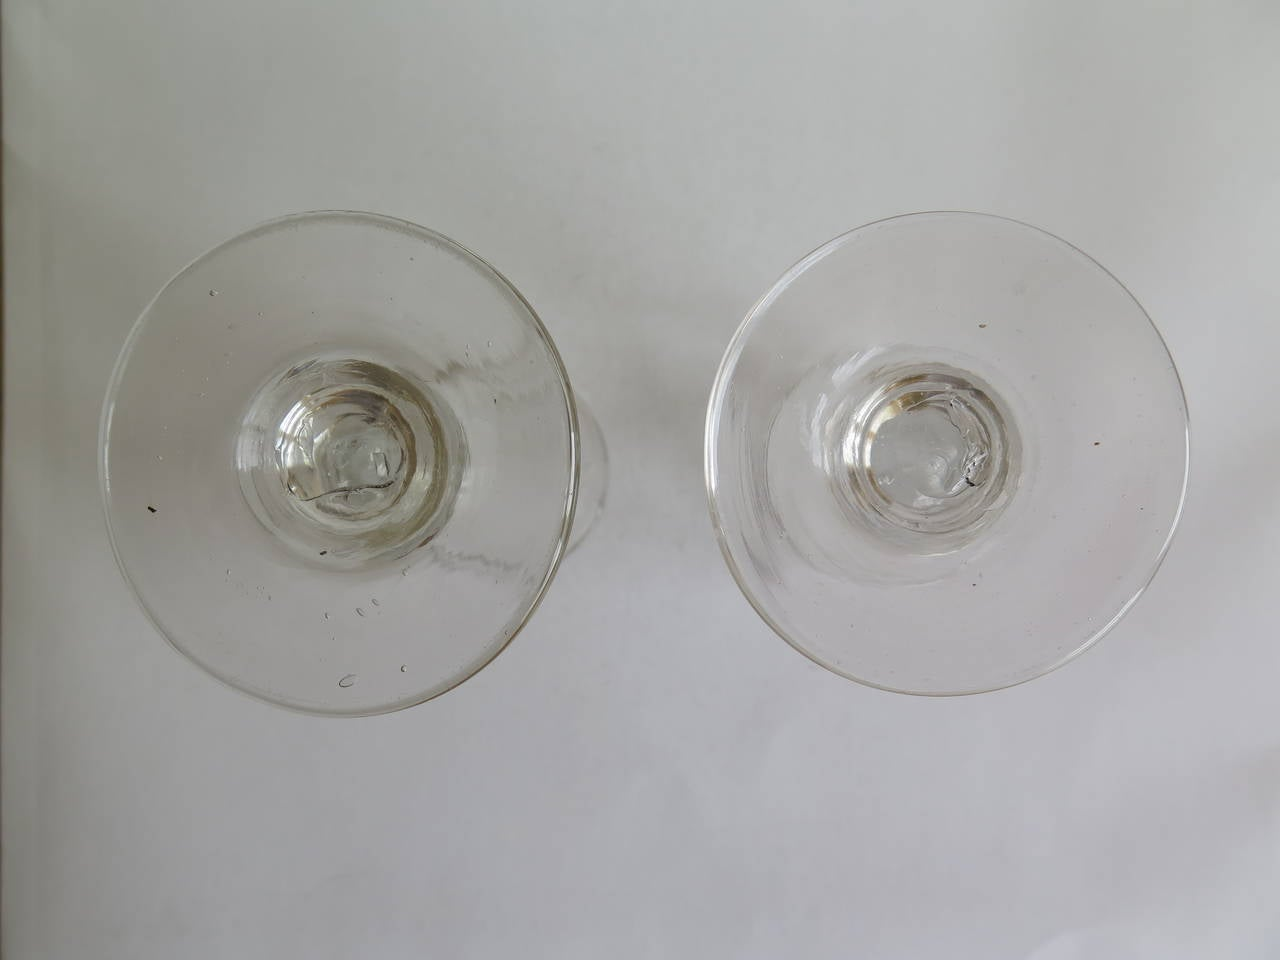 Georgian Pair of Wine Drinking Glasses Hand-blown and Engraved, Circa 1790 For Sale 3